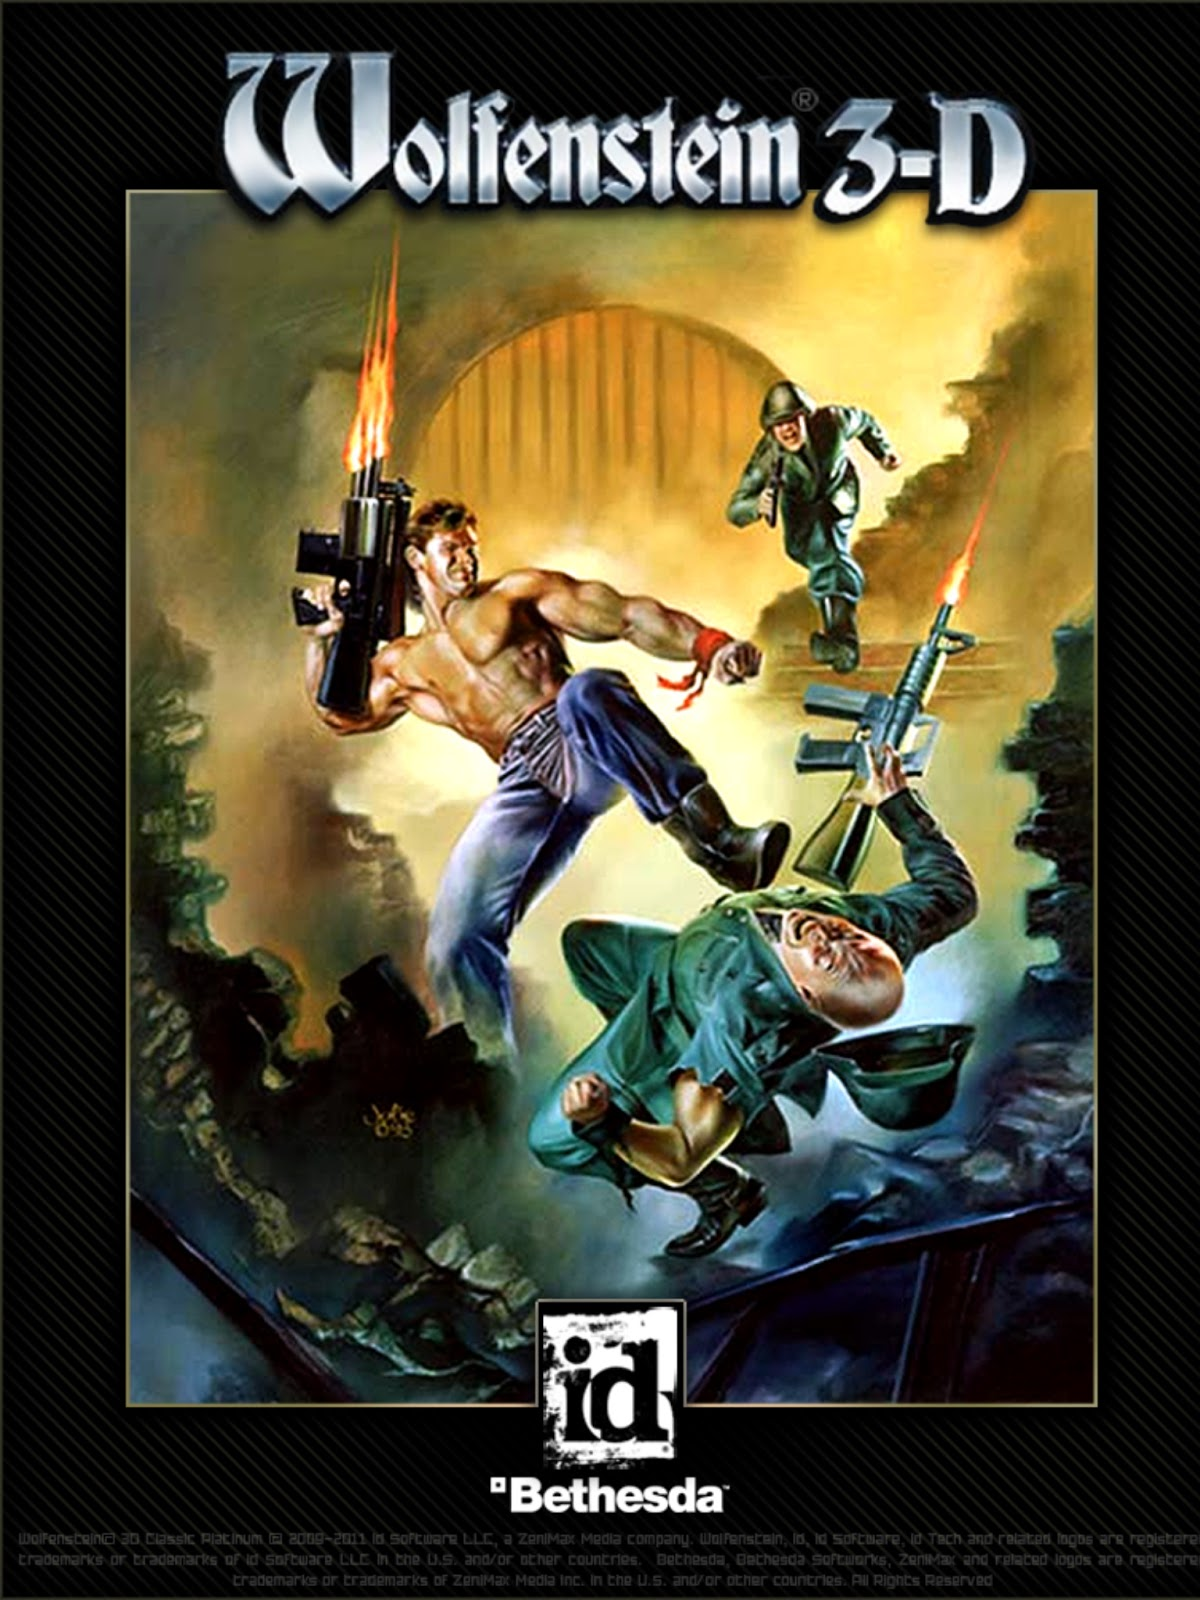 Arte da capa do Wolfenstein 3D